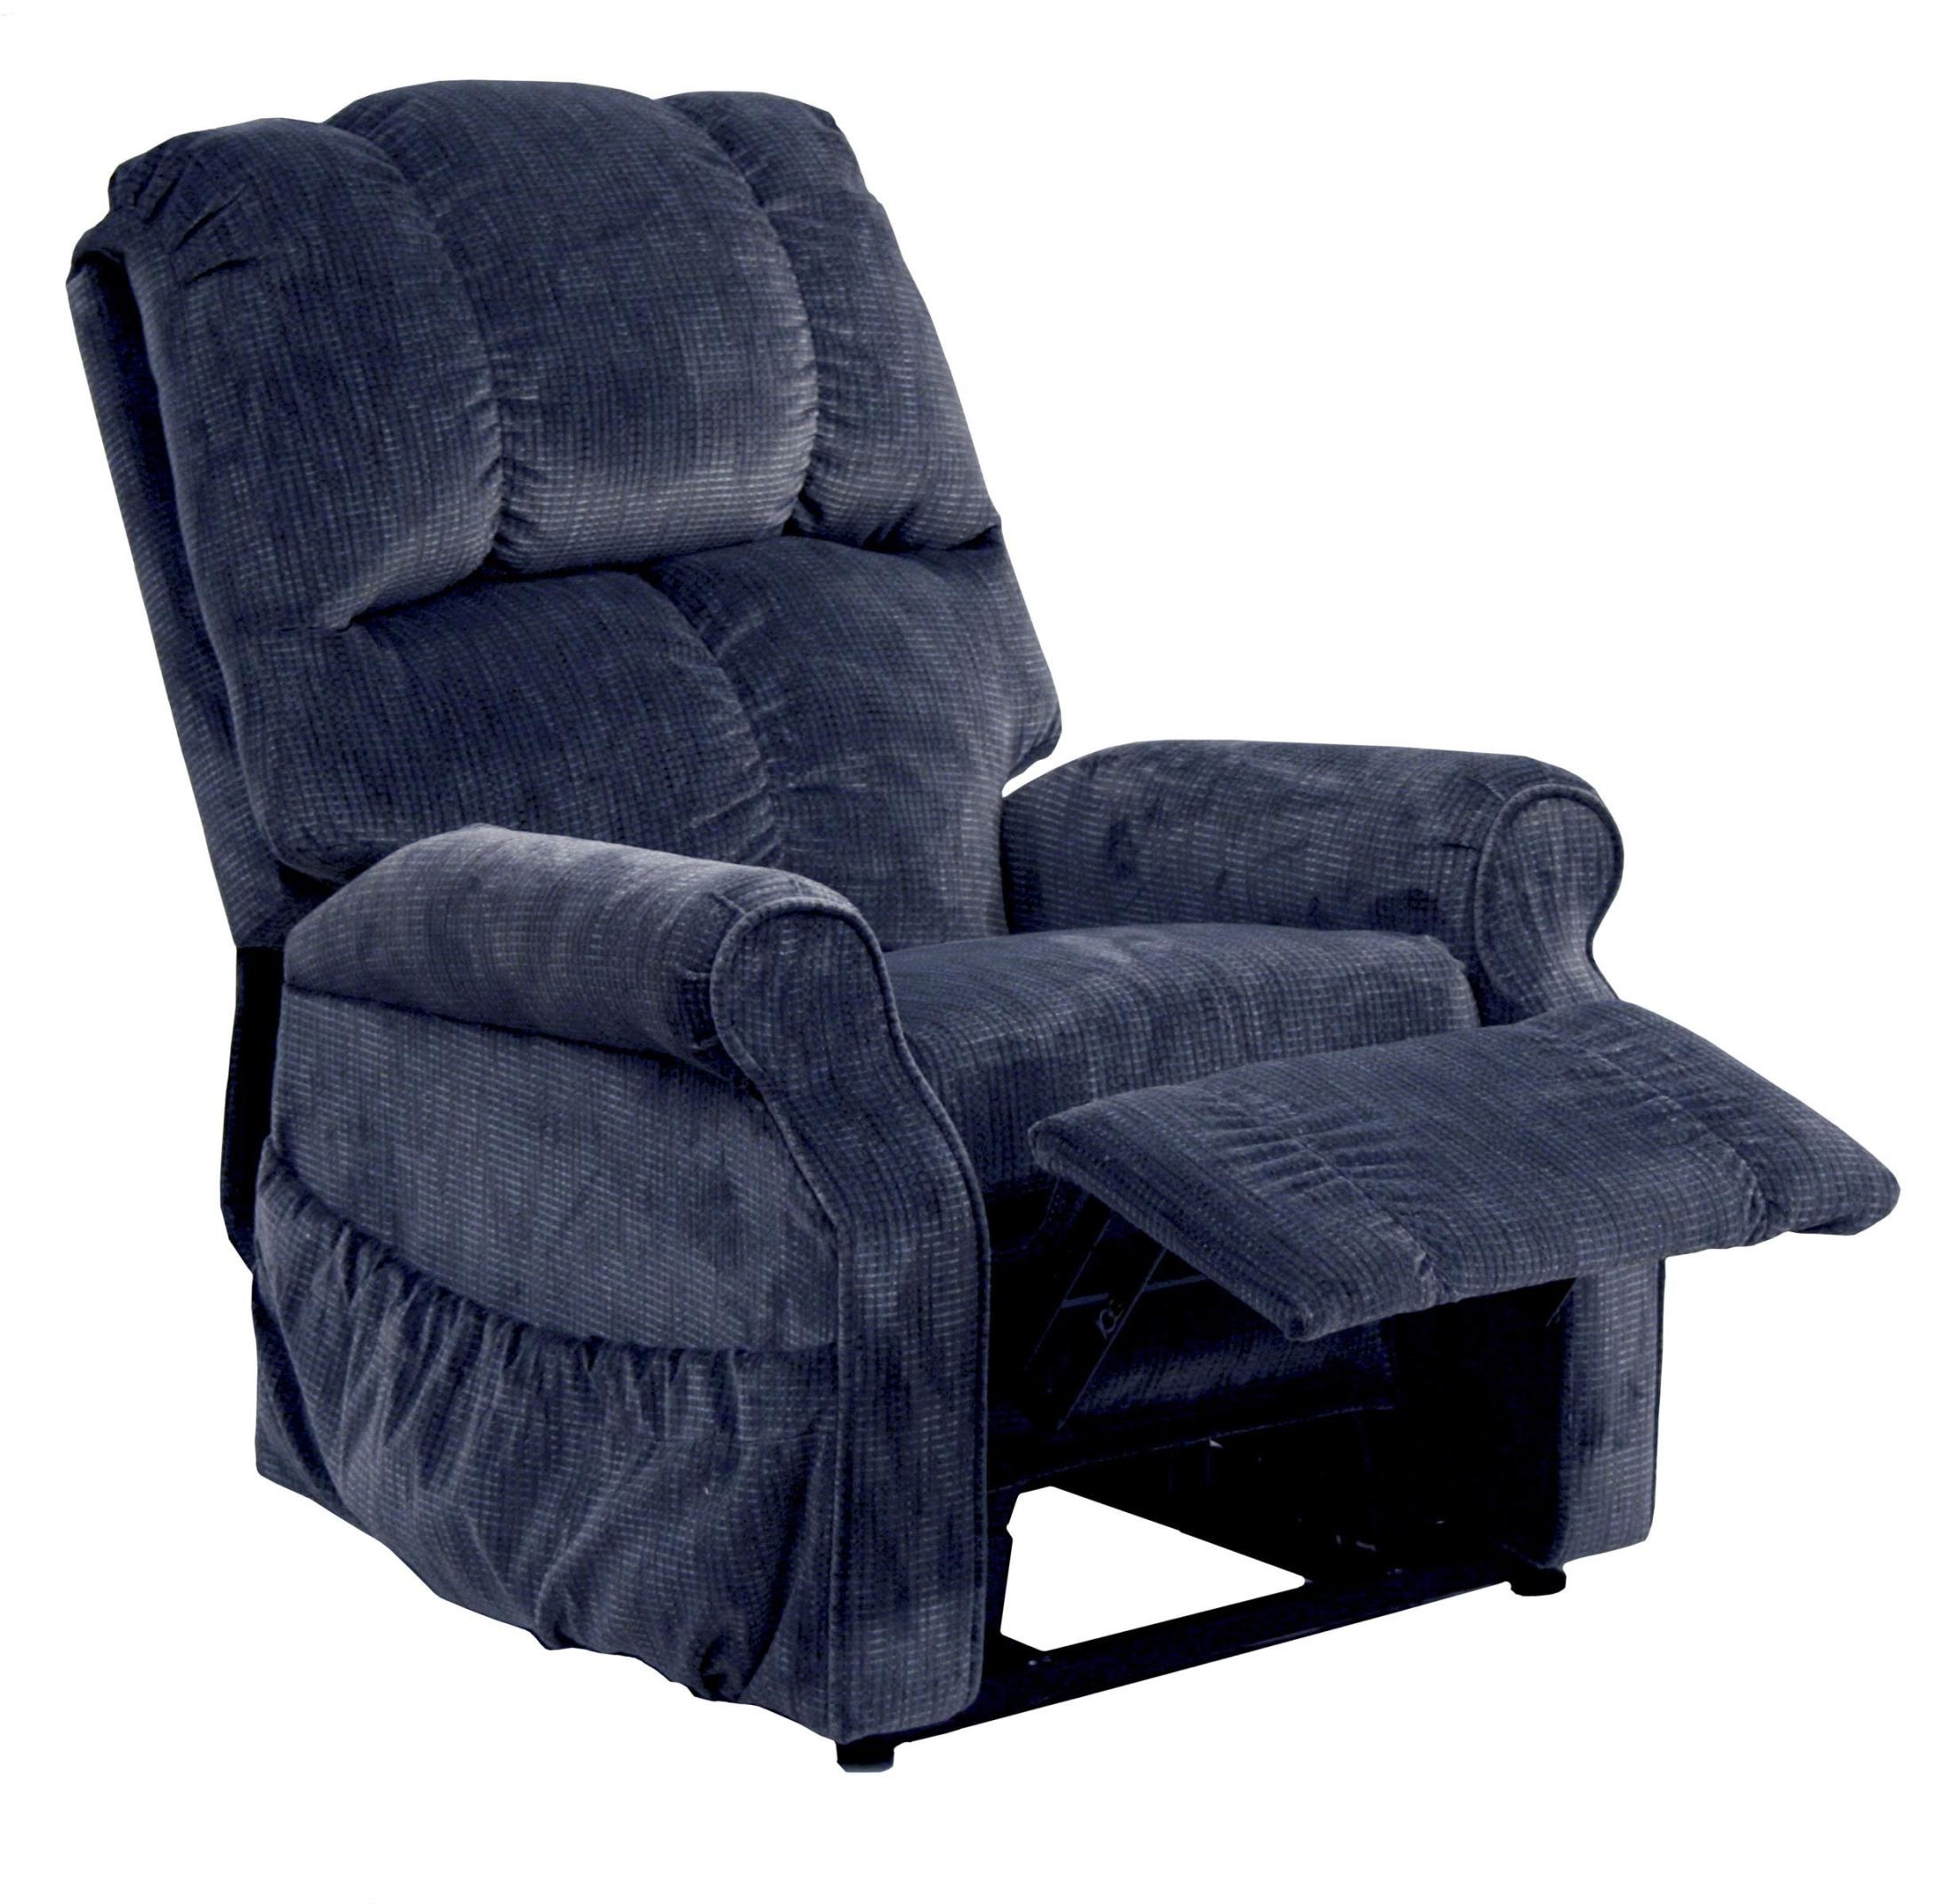 Somerset Black Pearl Power Lift Recliner From Catnapper